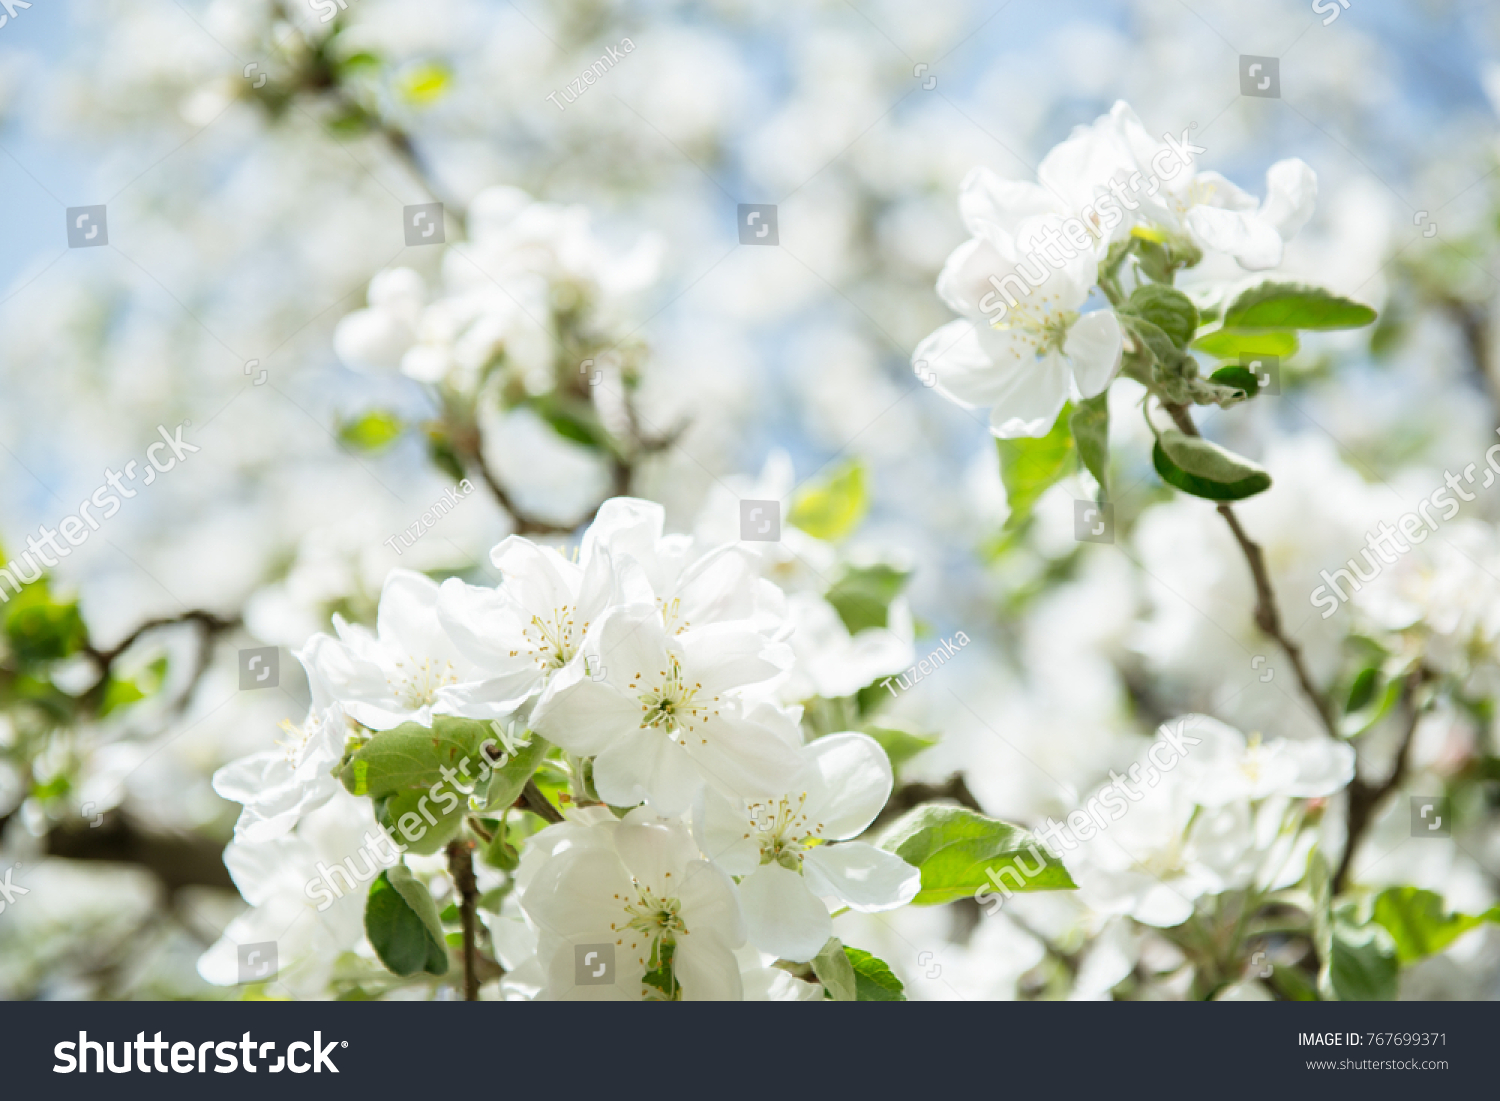 Apple blossoms blooming apple tree branch with large white flowers blooming apple tree branch with large white flowers flowering spring beautiful natural seasonsl background with apple trees flowers ez canvas mightylinksfo